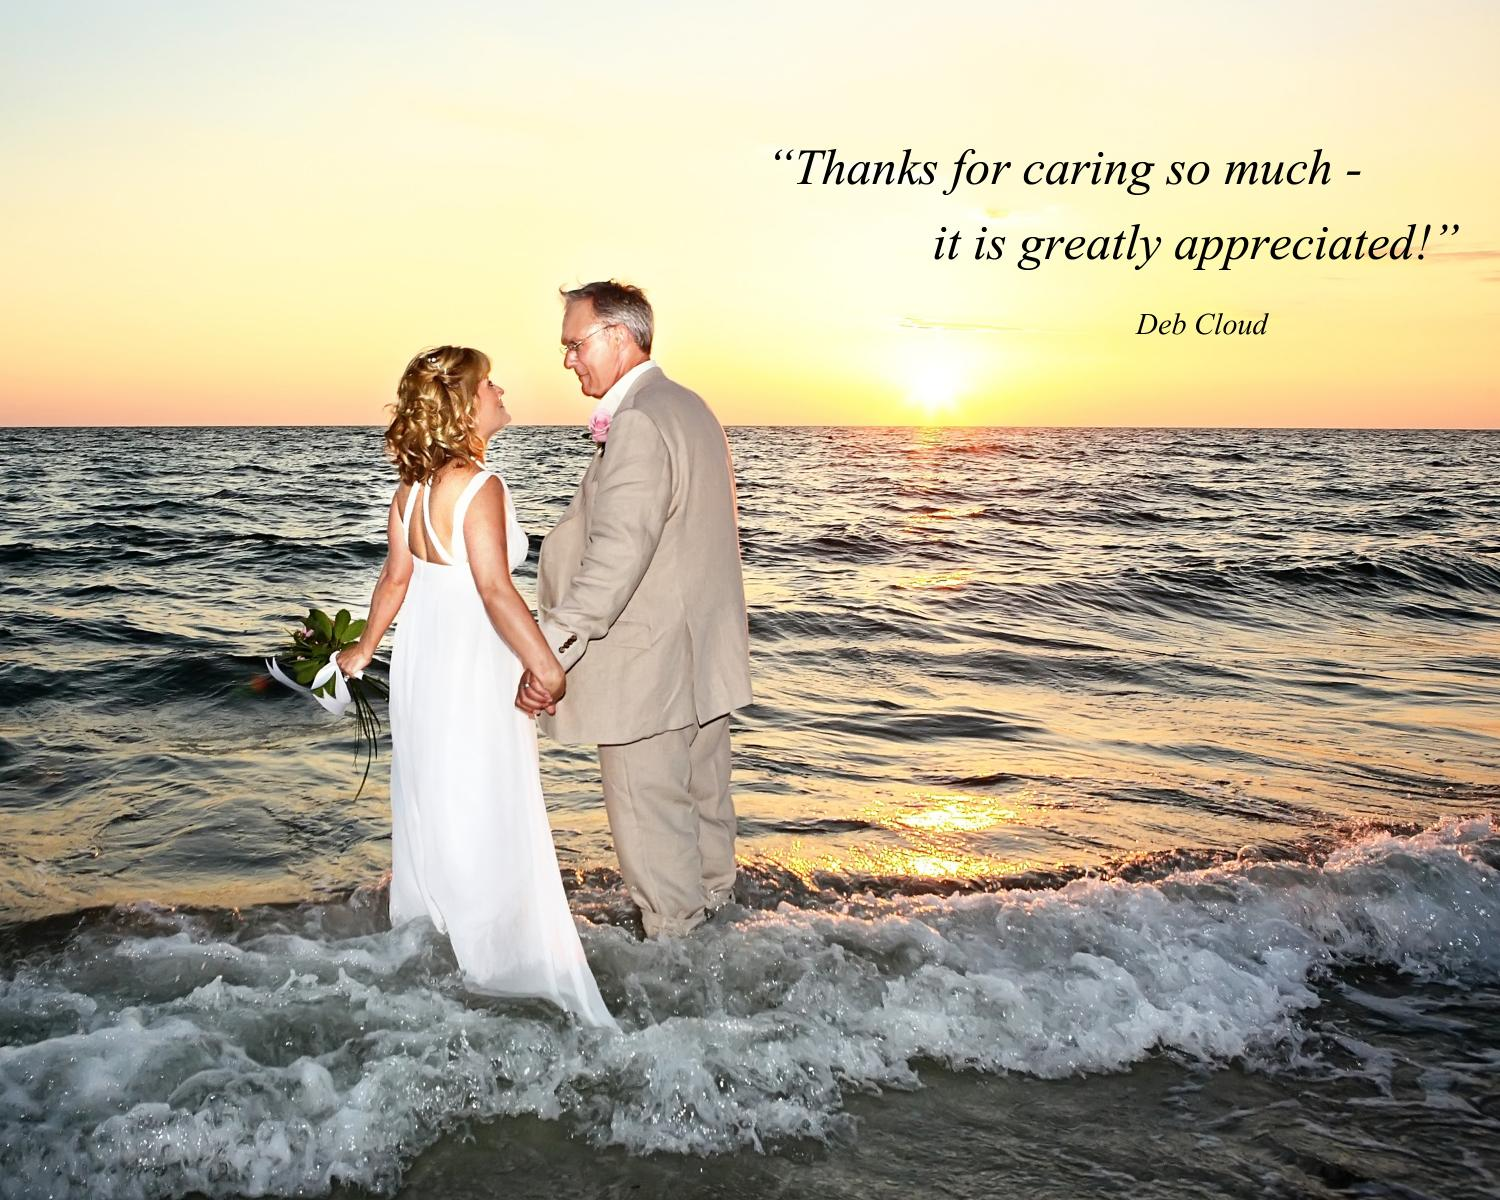 Testimonial Ritz-Carlton beach wedding